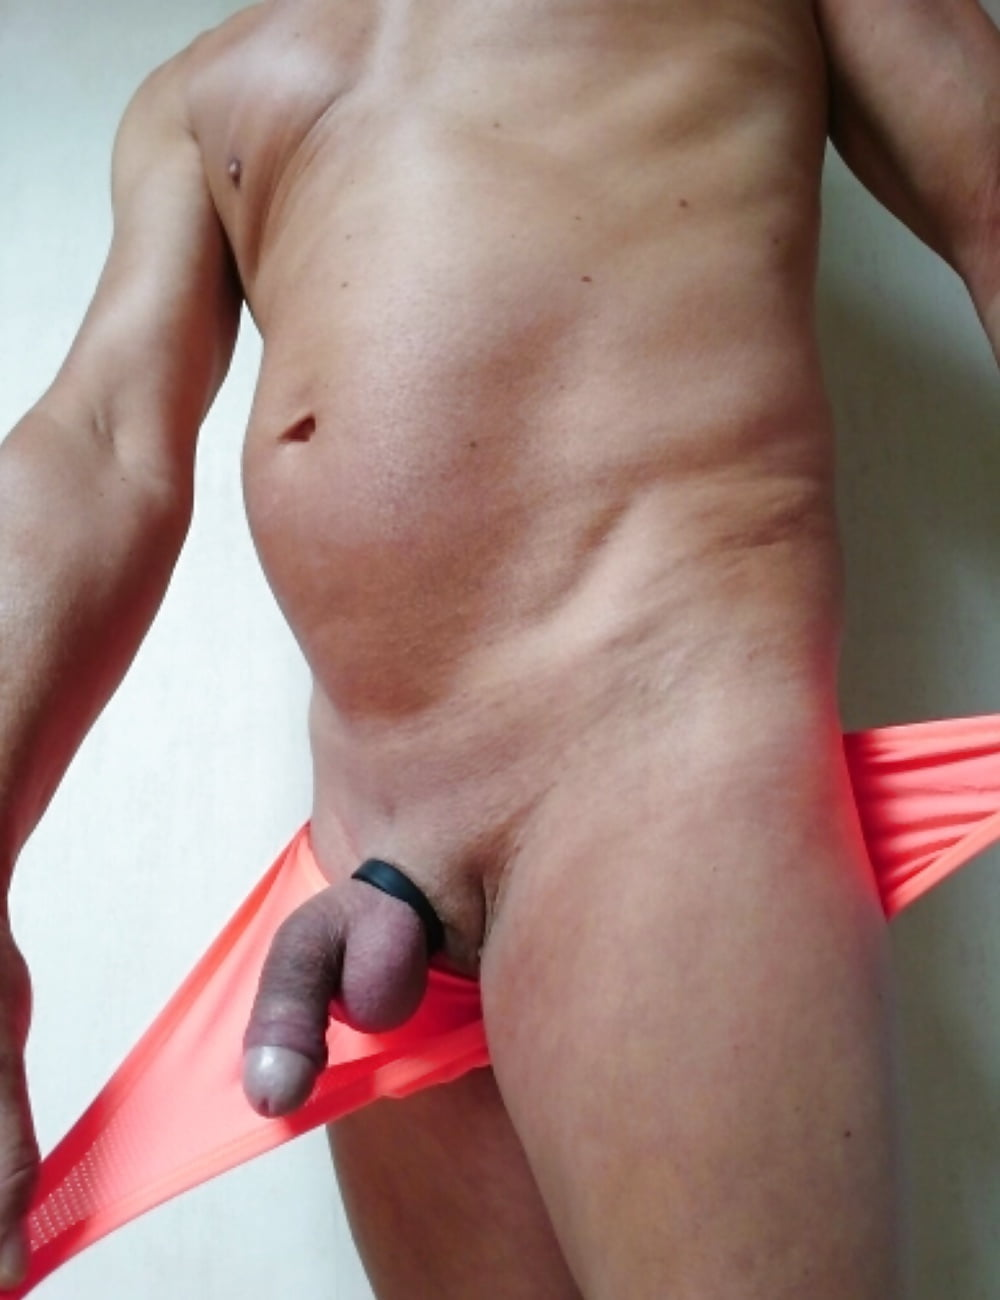 Download free twinks with visible penis lines hot boy gay